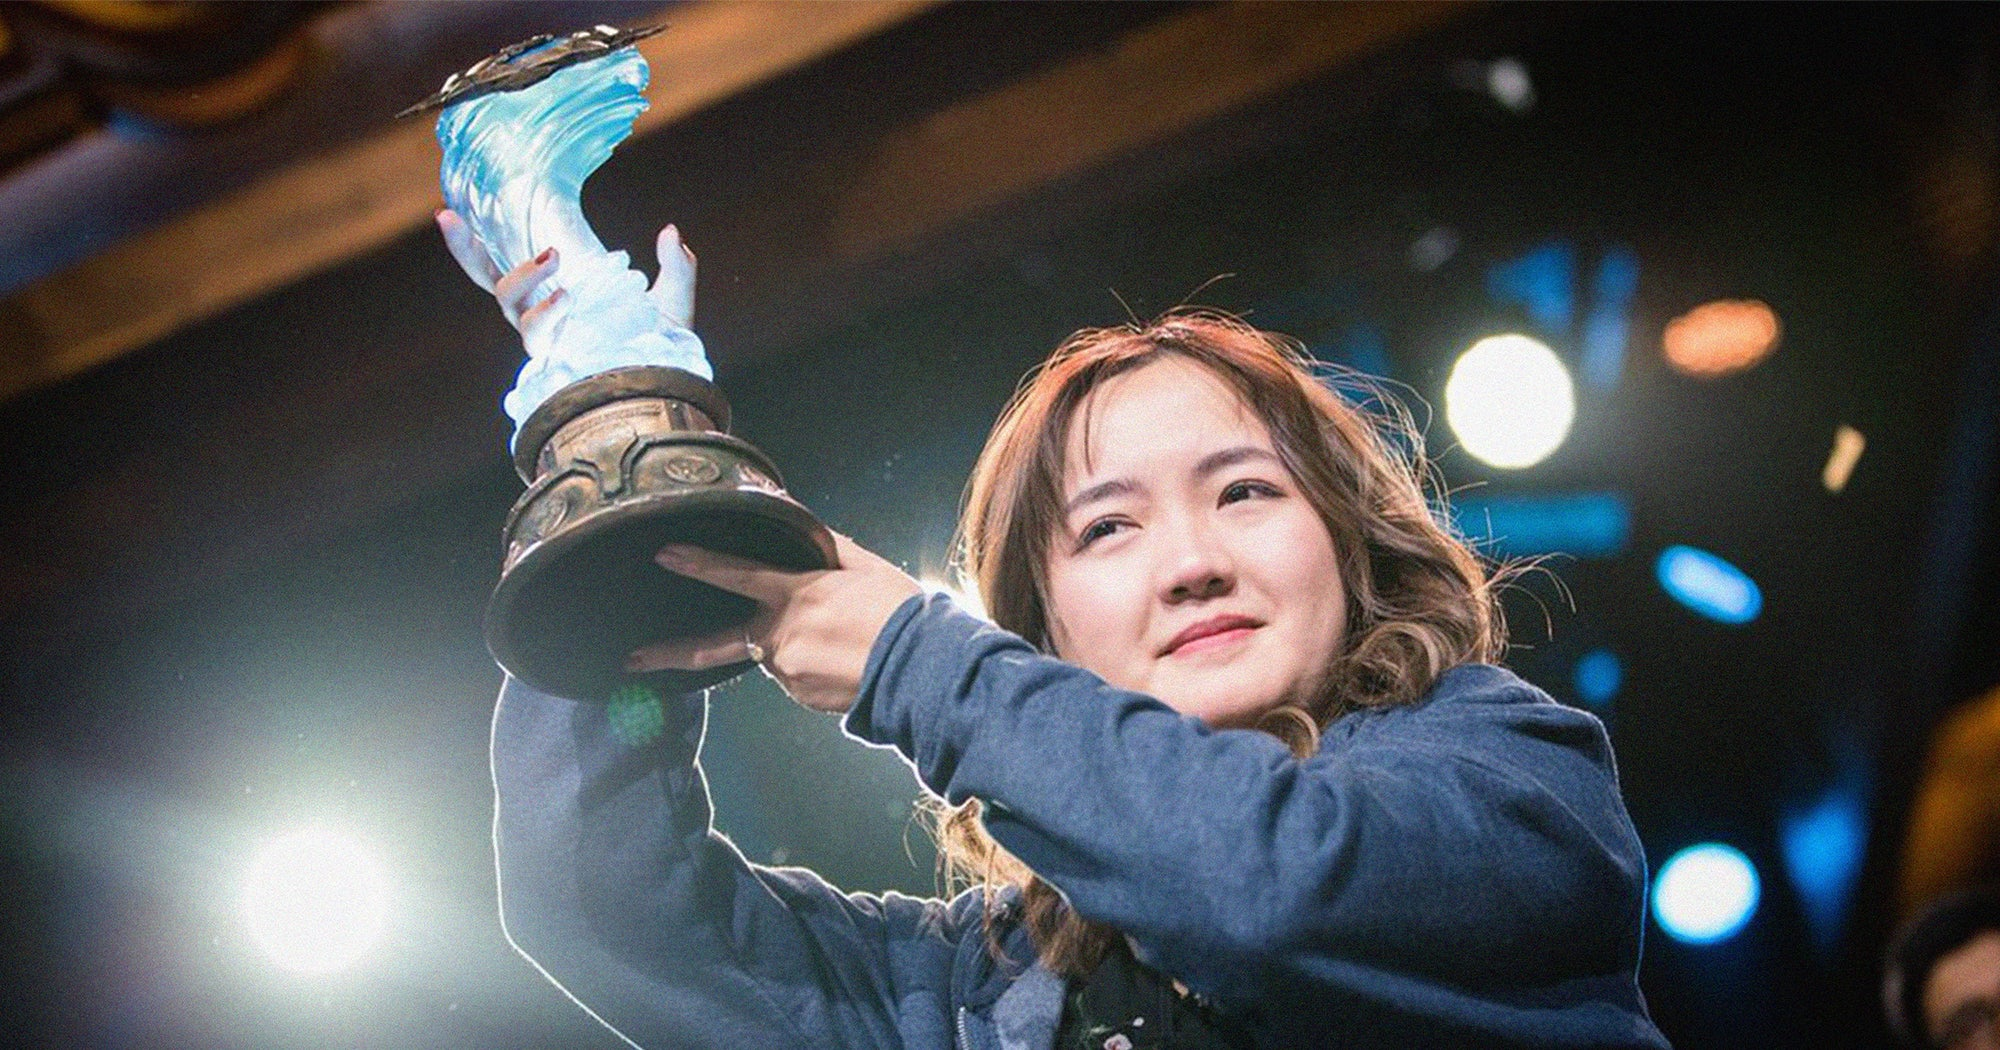 This Woman Just Made History With Her Esports Tournament Win